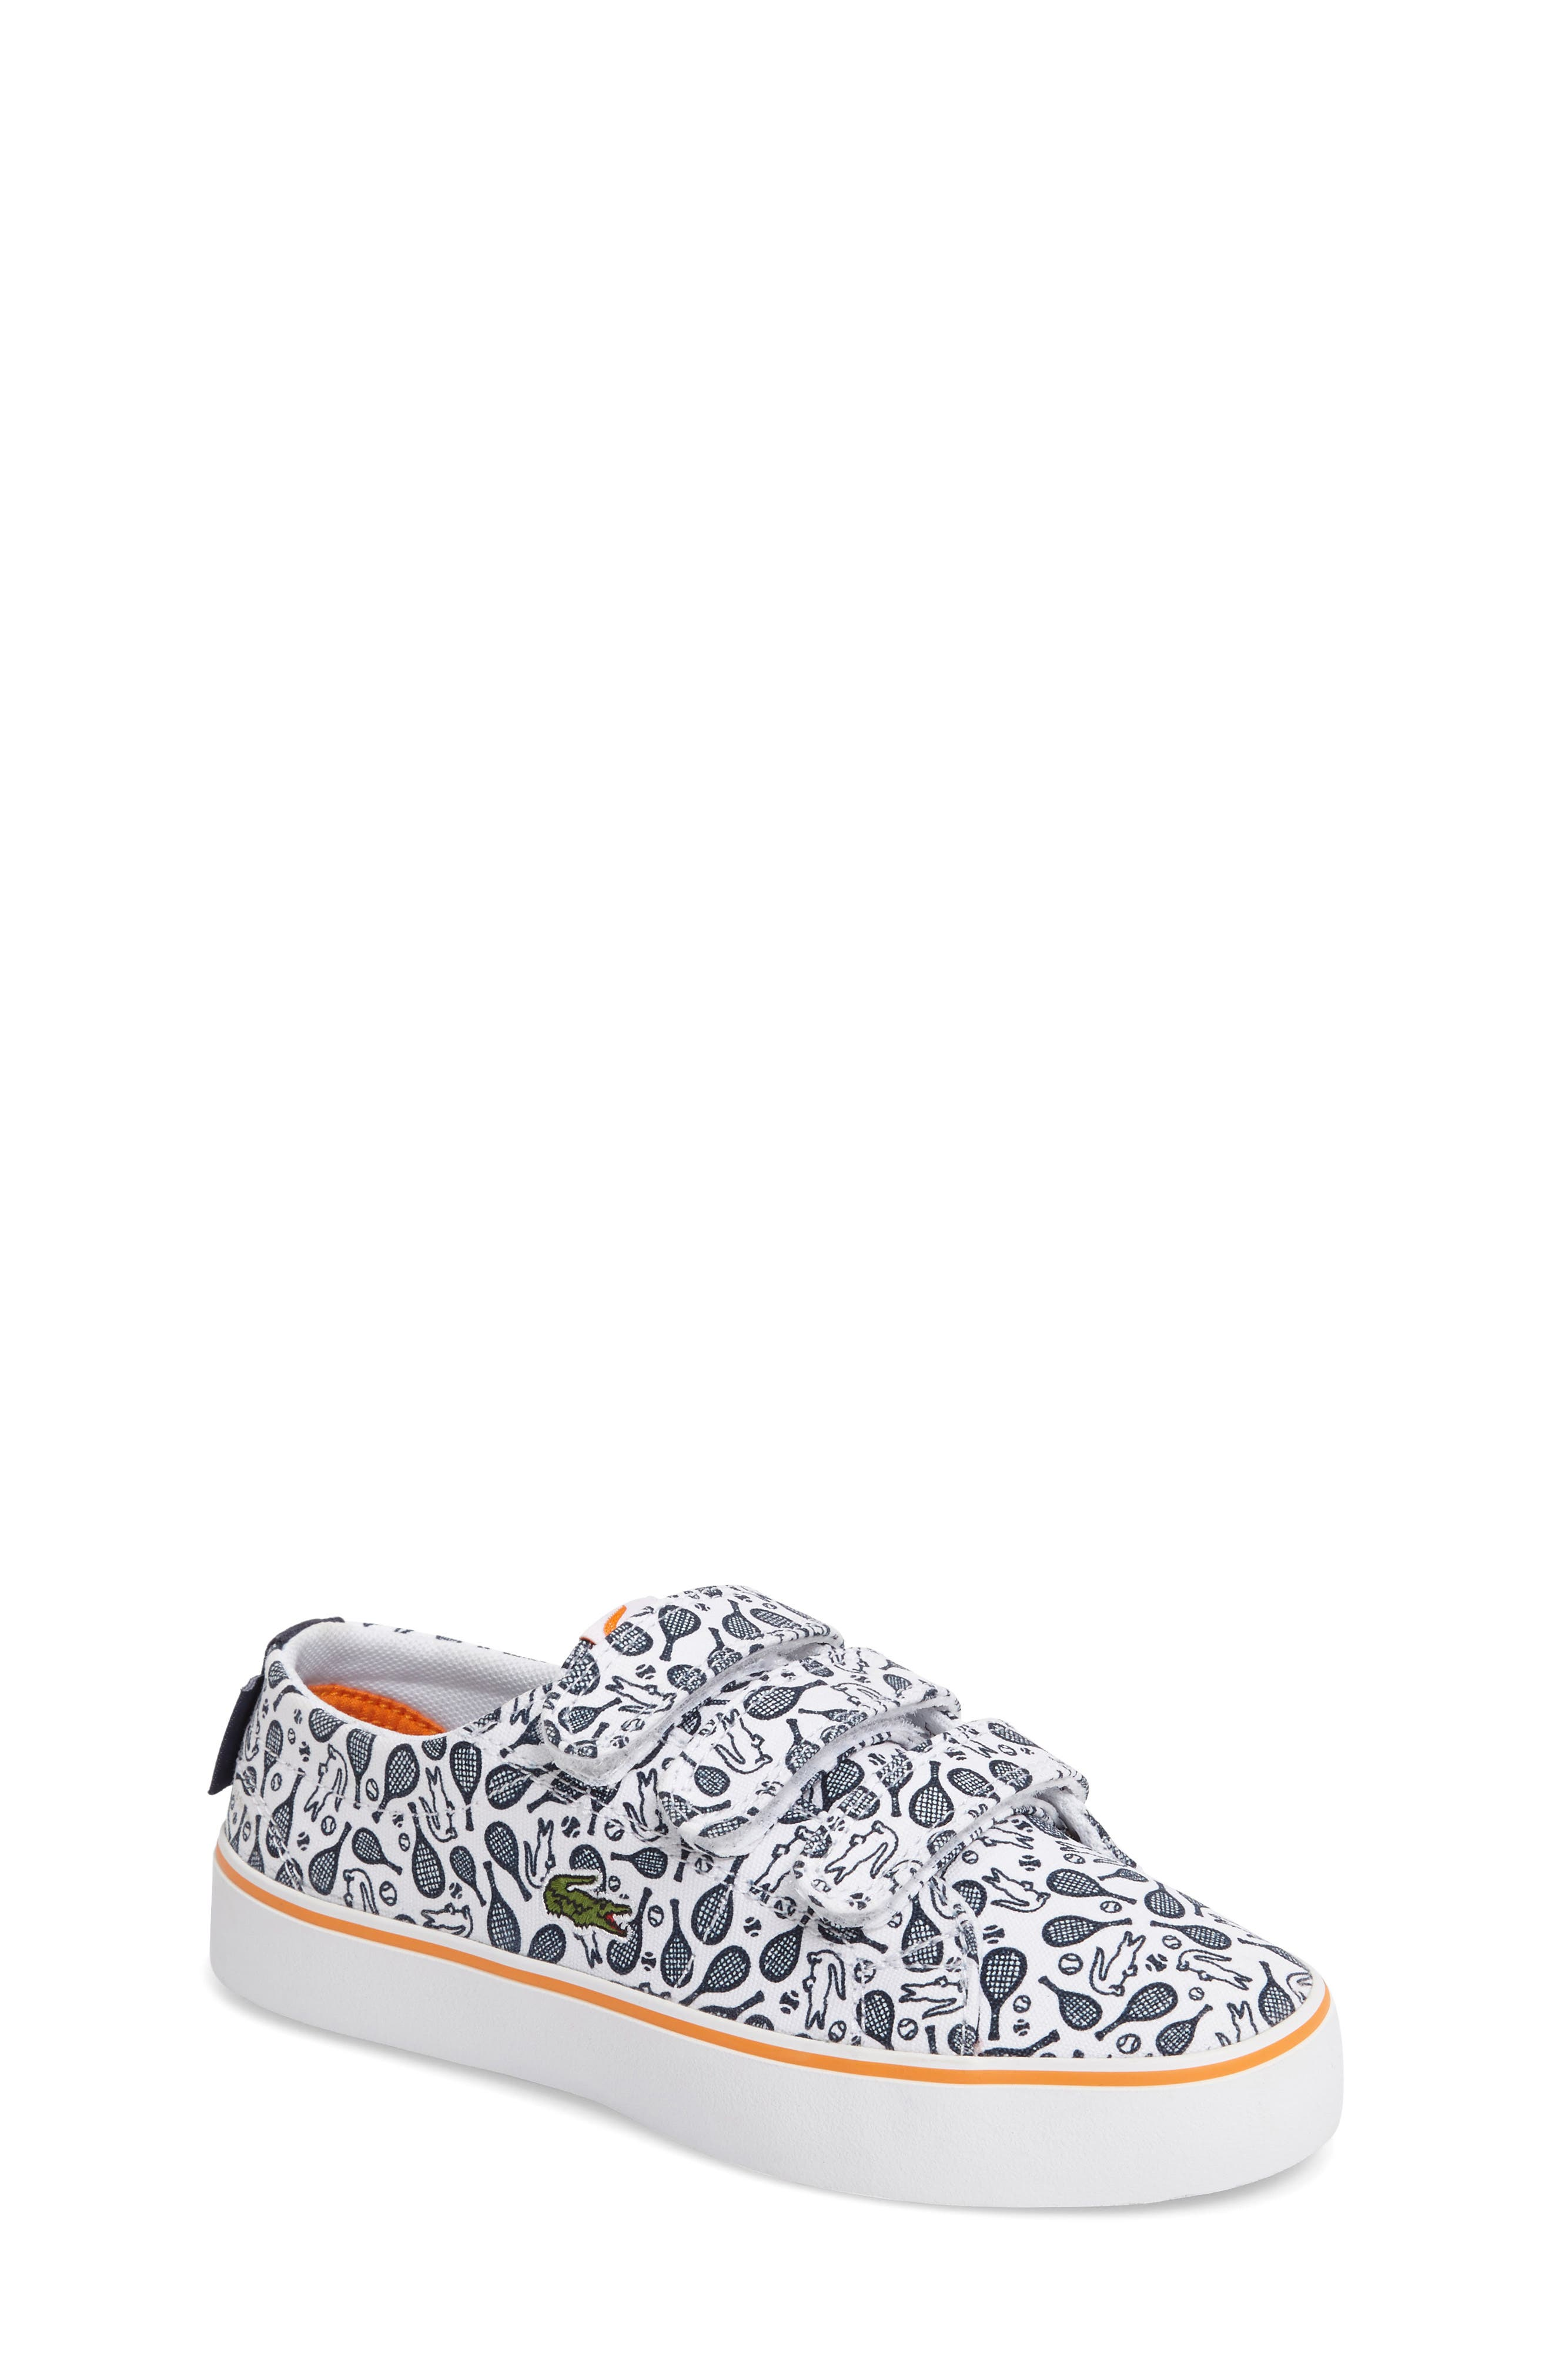 Alternate Image 1 Selected - Lacoste Marcel Chunky Tennis Racket Sneaker (Baby, Walker, Toddler & Little Kid)